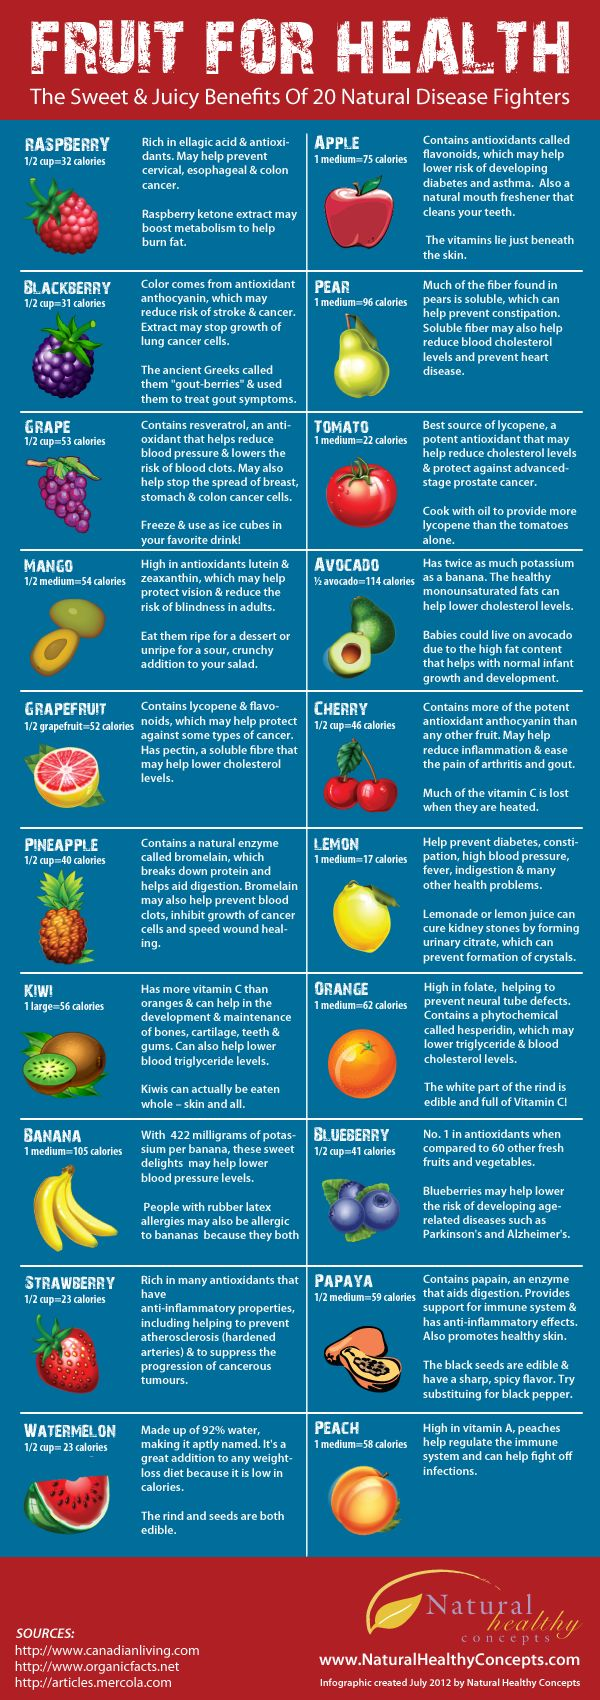 The disease-fighting benefits of fruit.